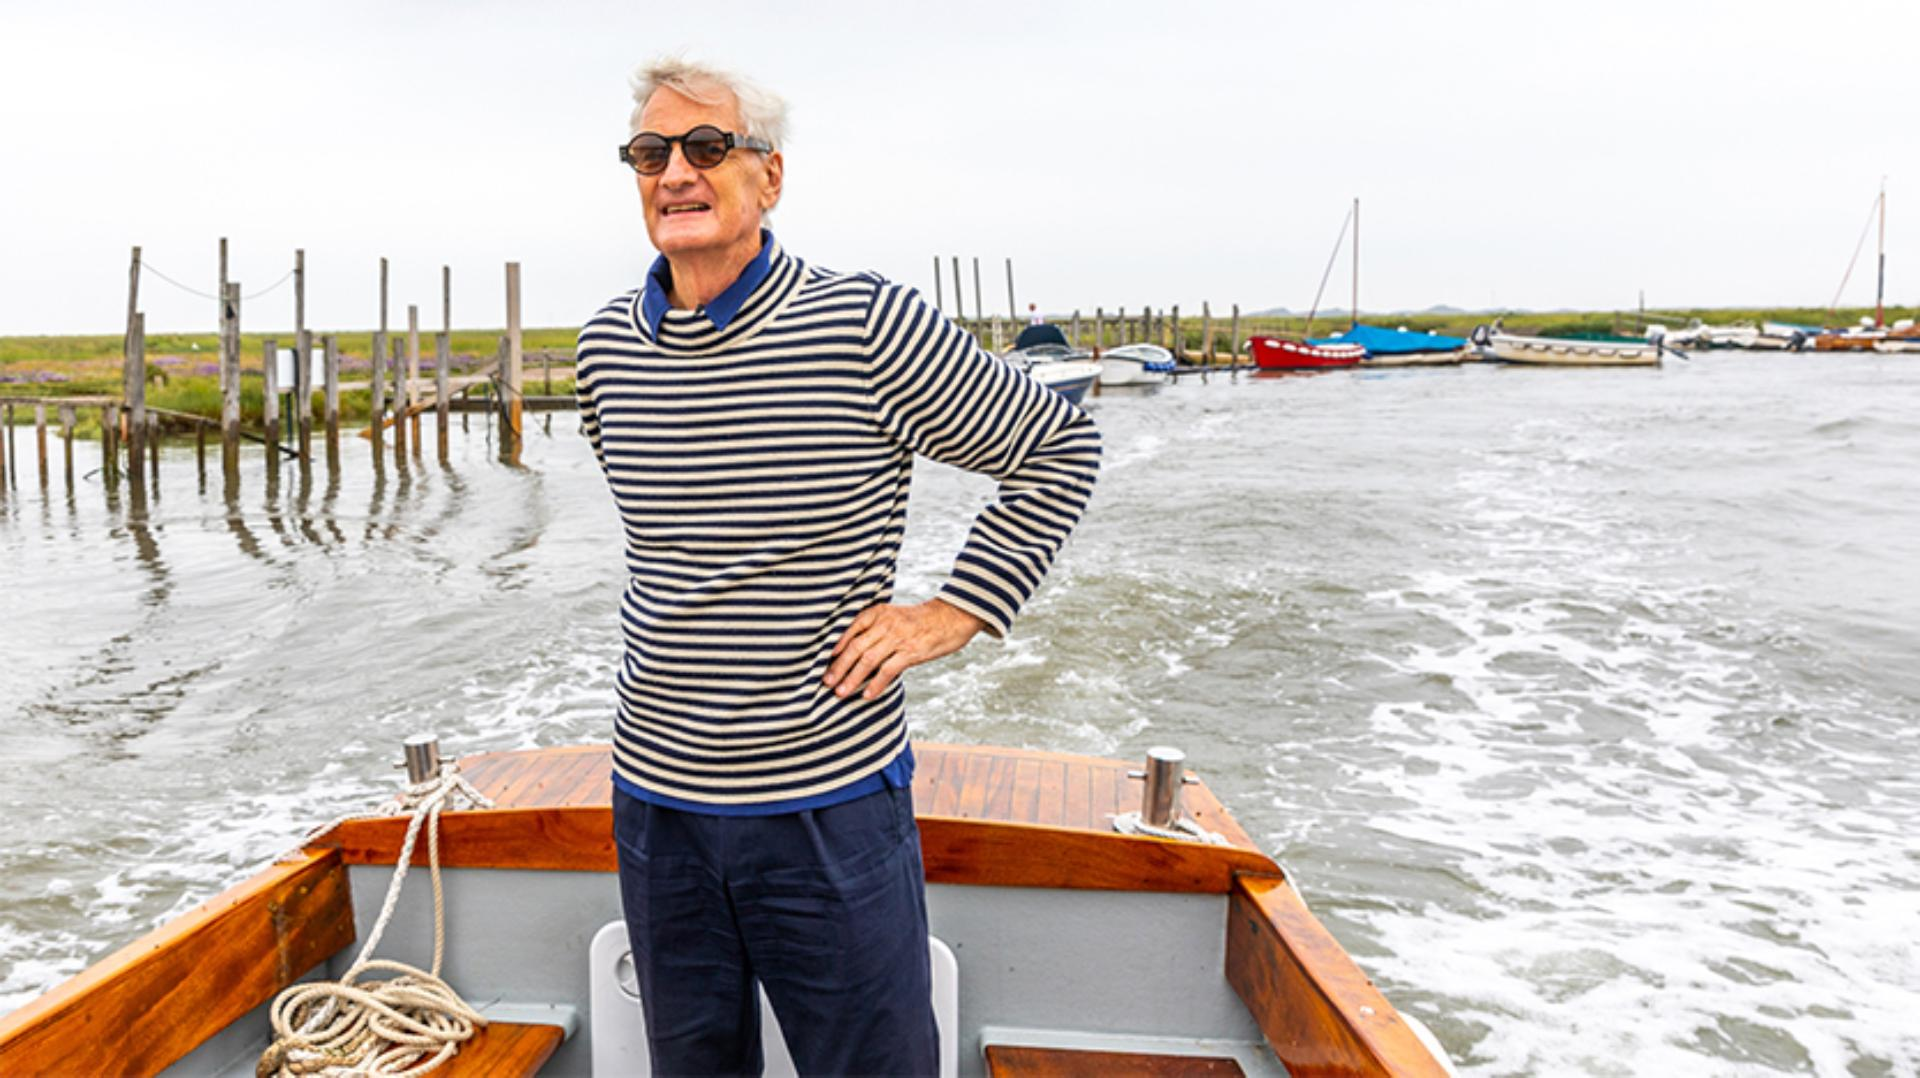 James Dyson standing on a boat at Blakeney Point